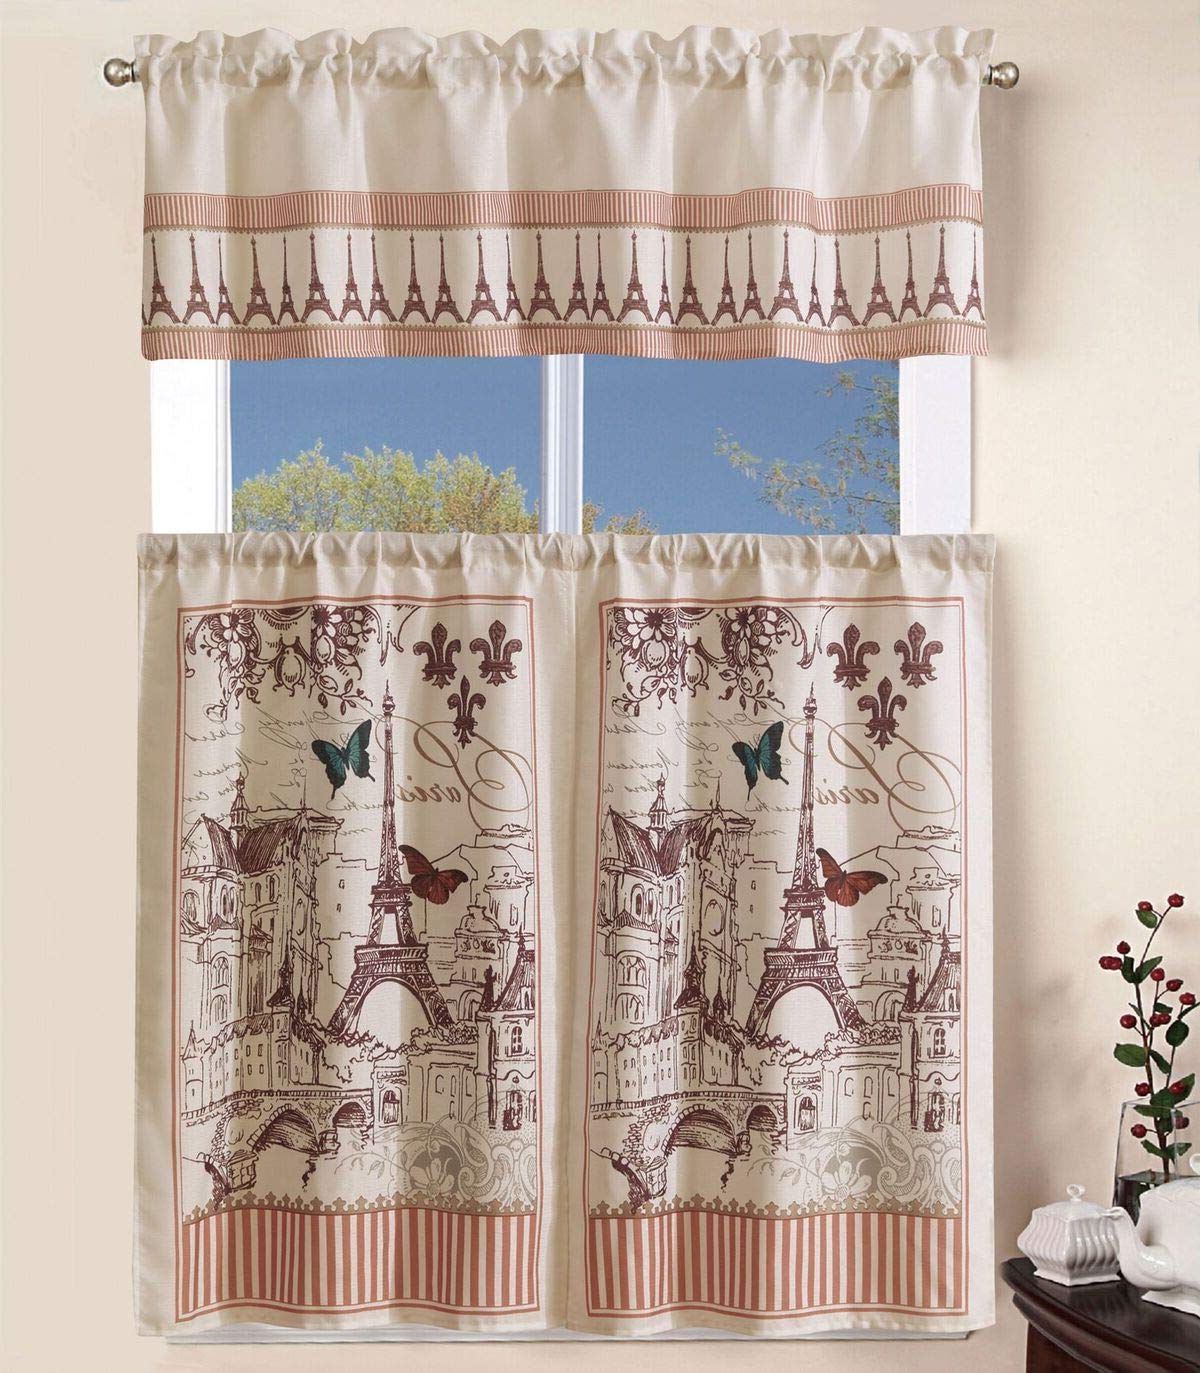 "Microfiber 3 Piece Kitchen Curtain Valance And Tiers Sets In Favorite Superior Home 3 Piece Kitchen Curtain Linen Set With 2 Tiers 27"" W (Total Width 54"") X 36"" L And 1 Tailored Valance 54"" W X 15"" L, France Paris Eiffel (Gallery 8 of 20)"